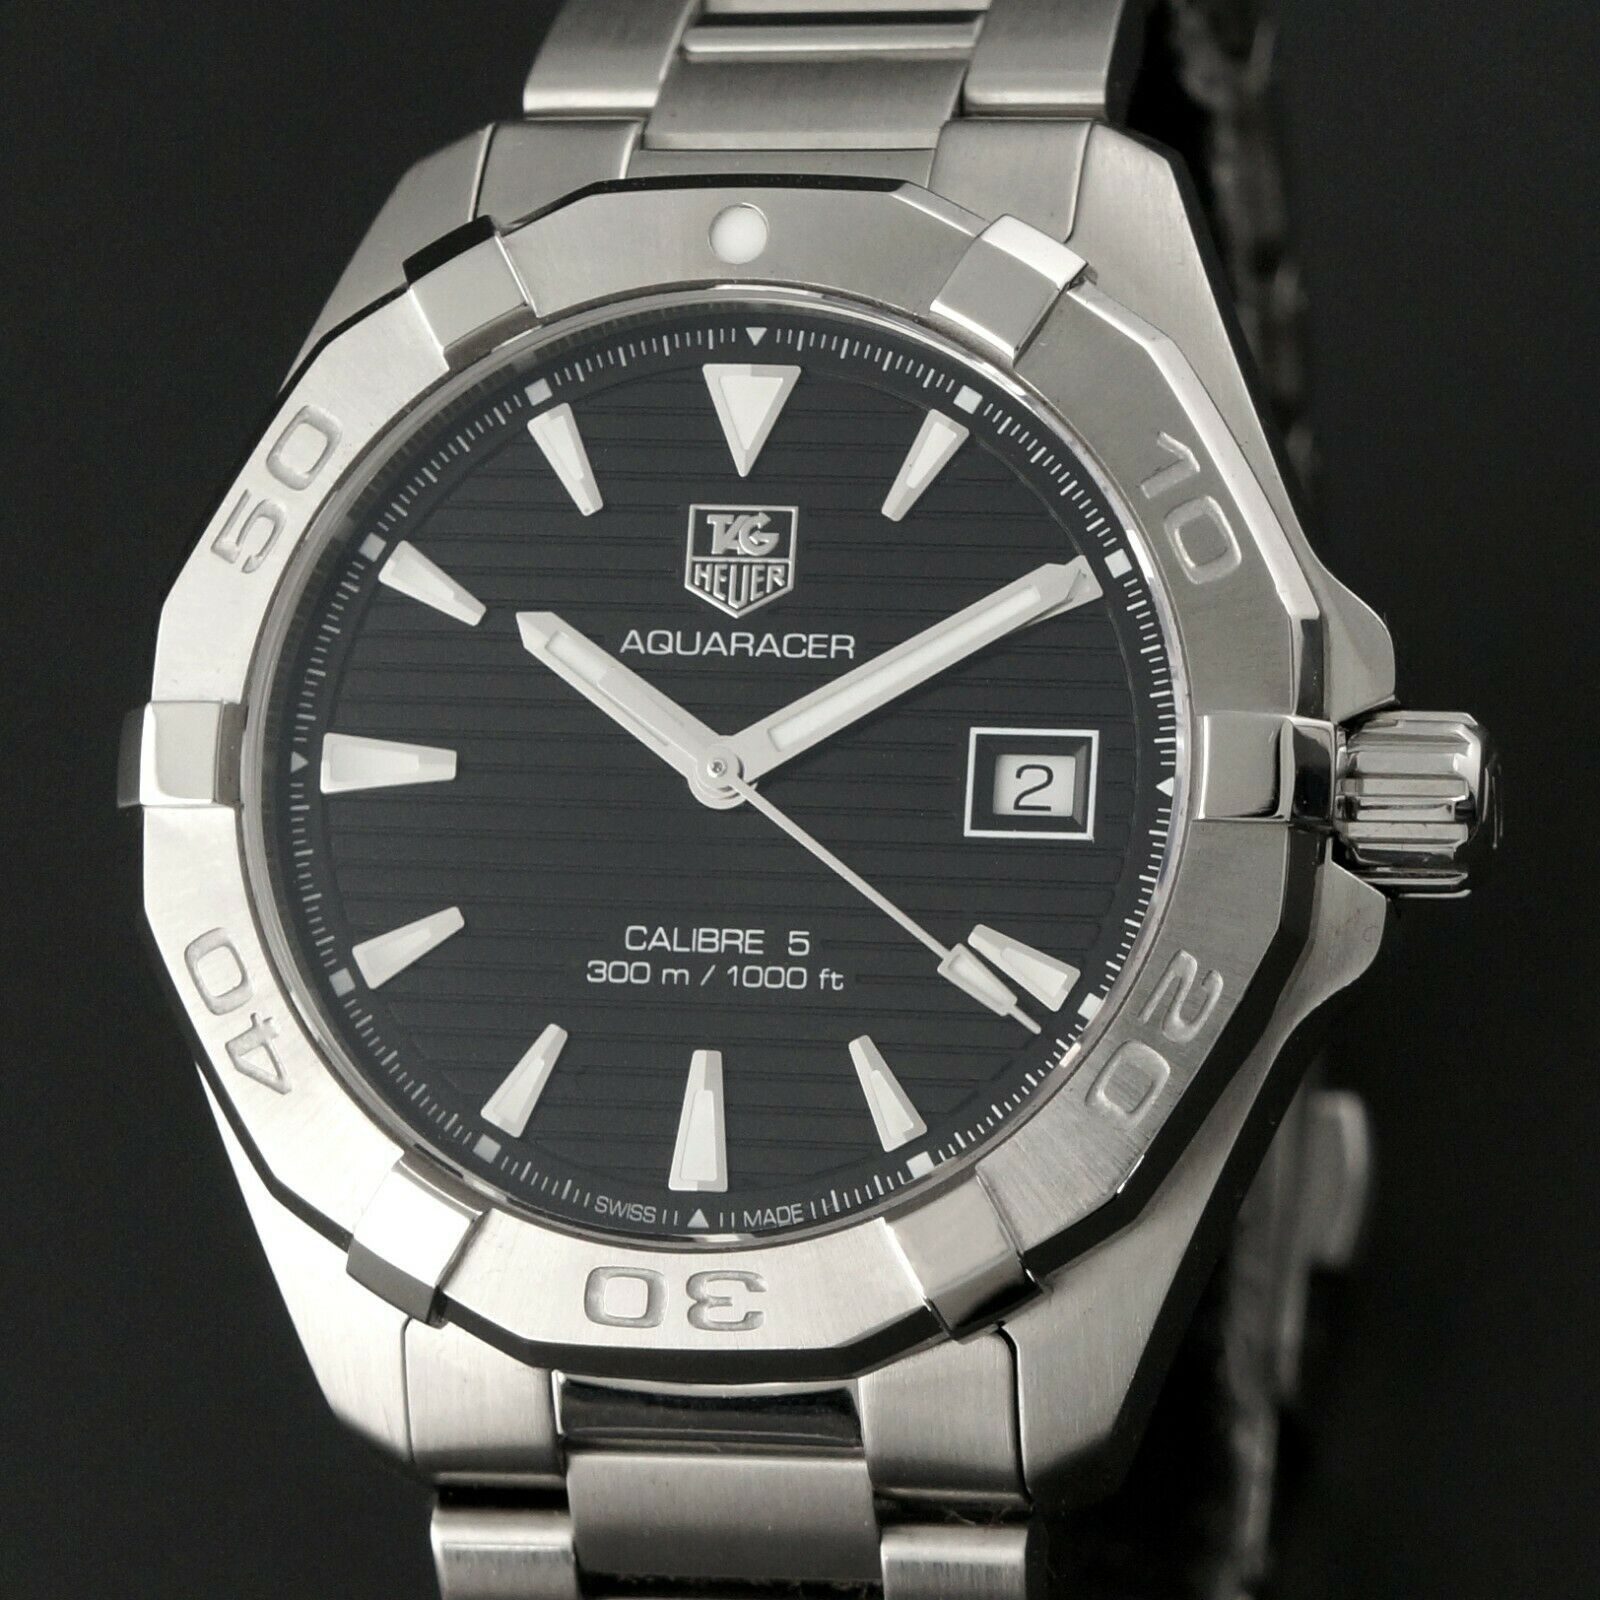 Tag Heuer WAY2110 Aquaracer Calibre 5 Stainless Steel Man's Dive Watch, Box, NR!